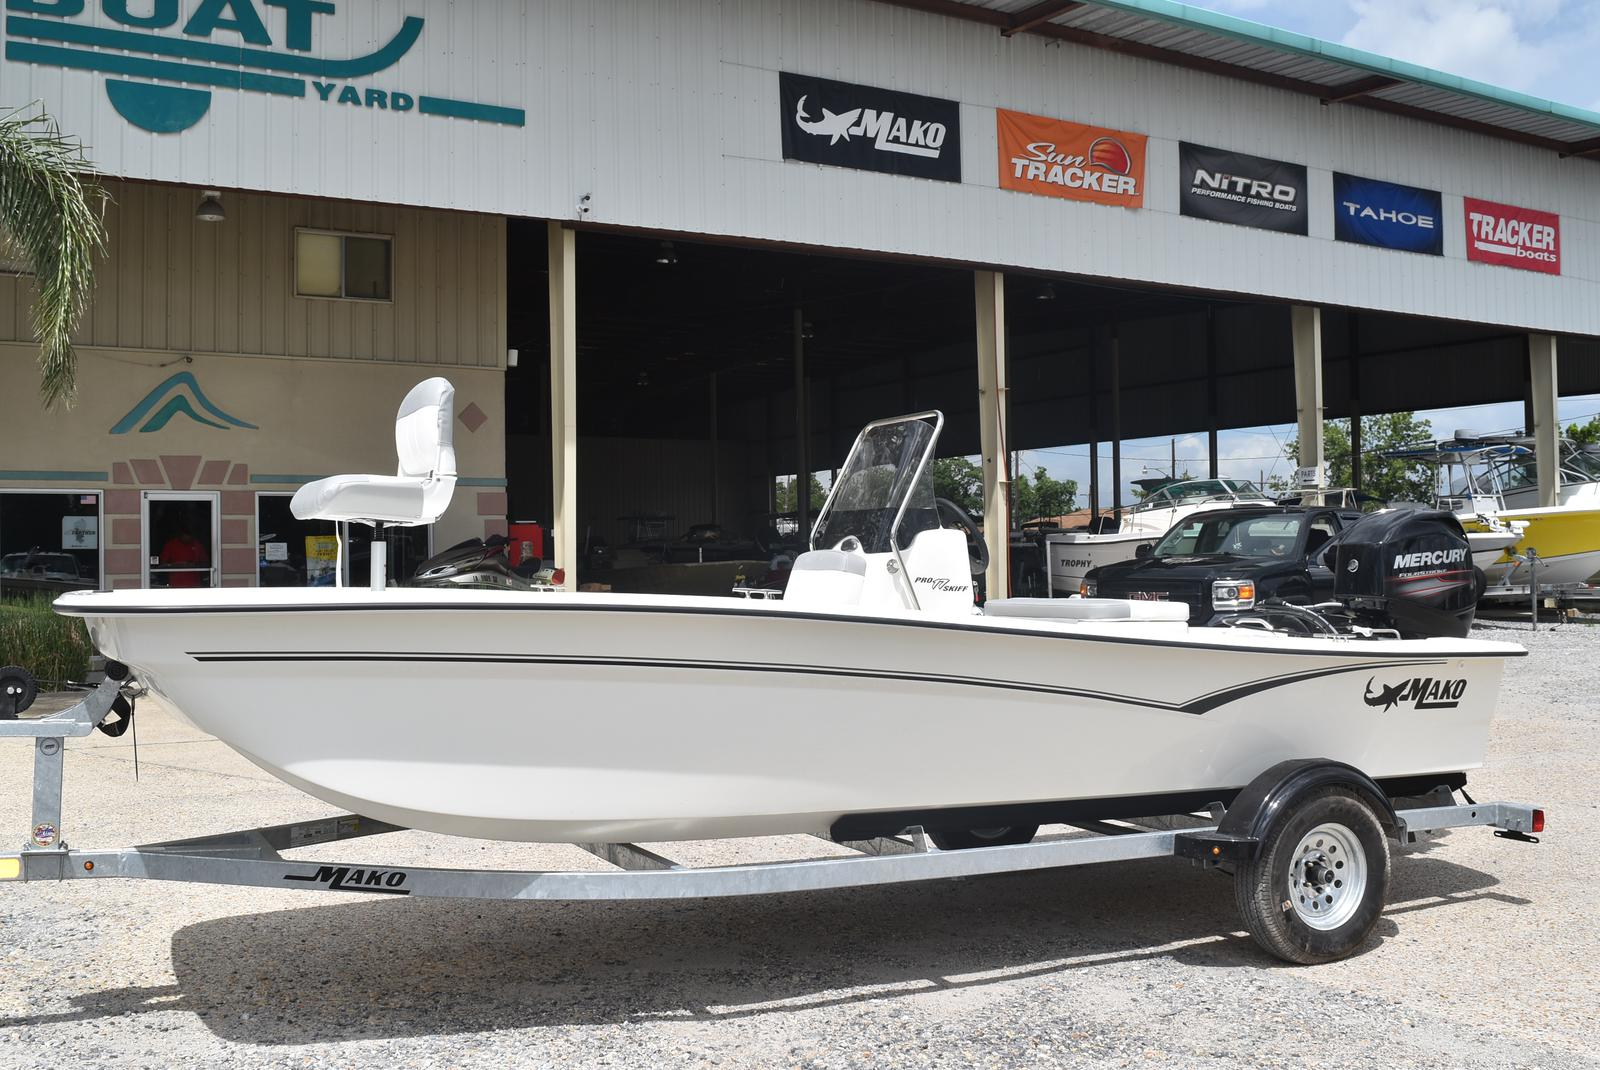 2020 Mako boat for sale, model of the boat is Pro Skiff 17, 75 ELPT & Image # 90 of 702